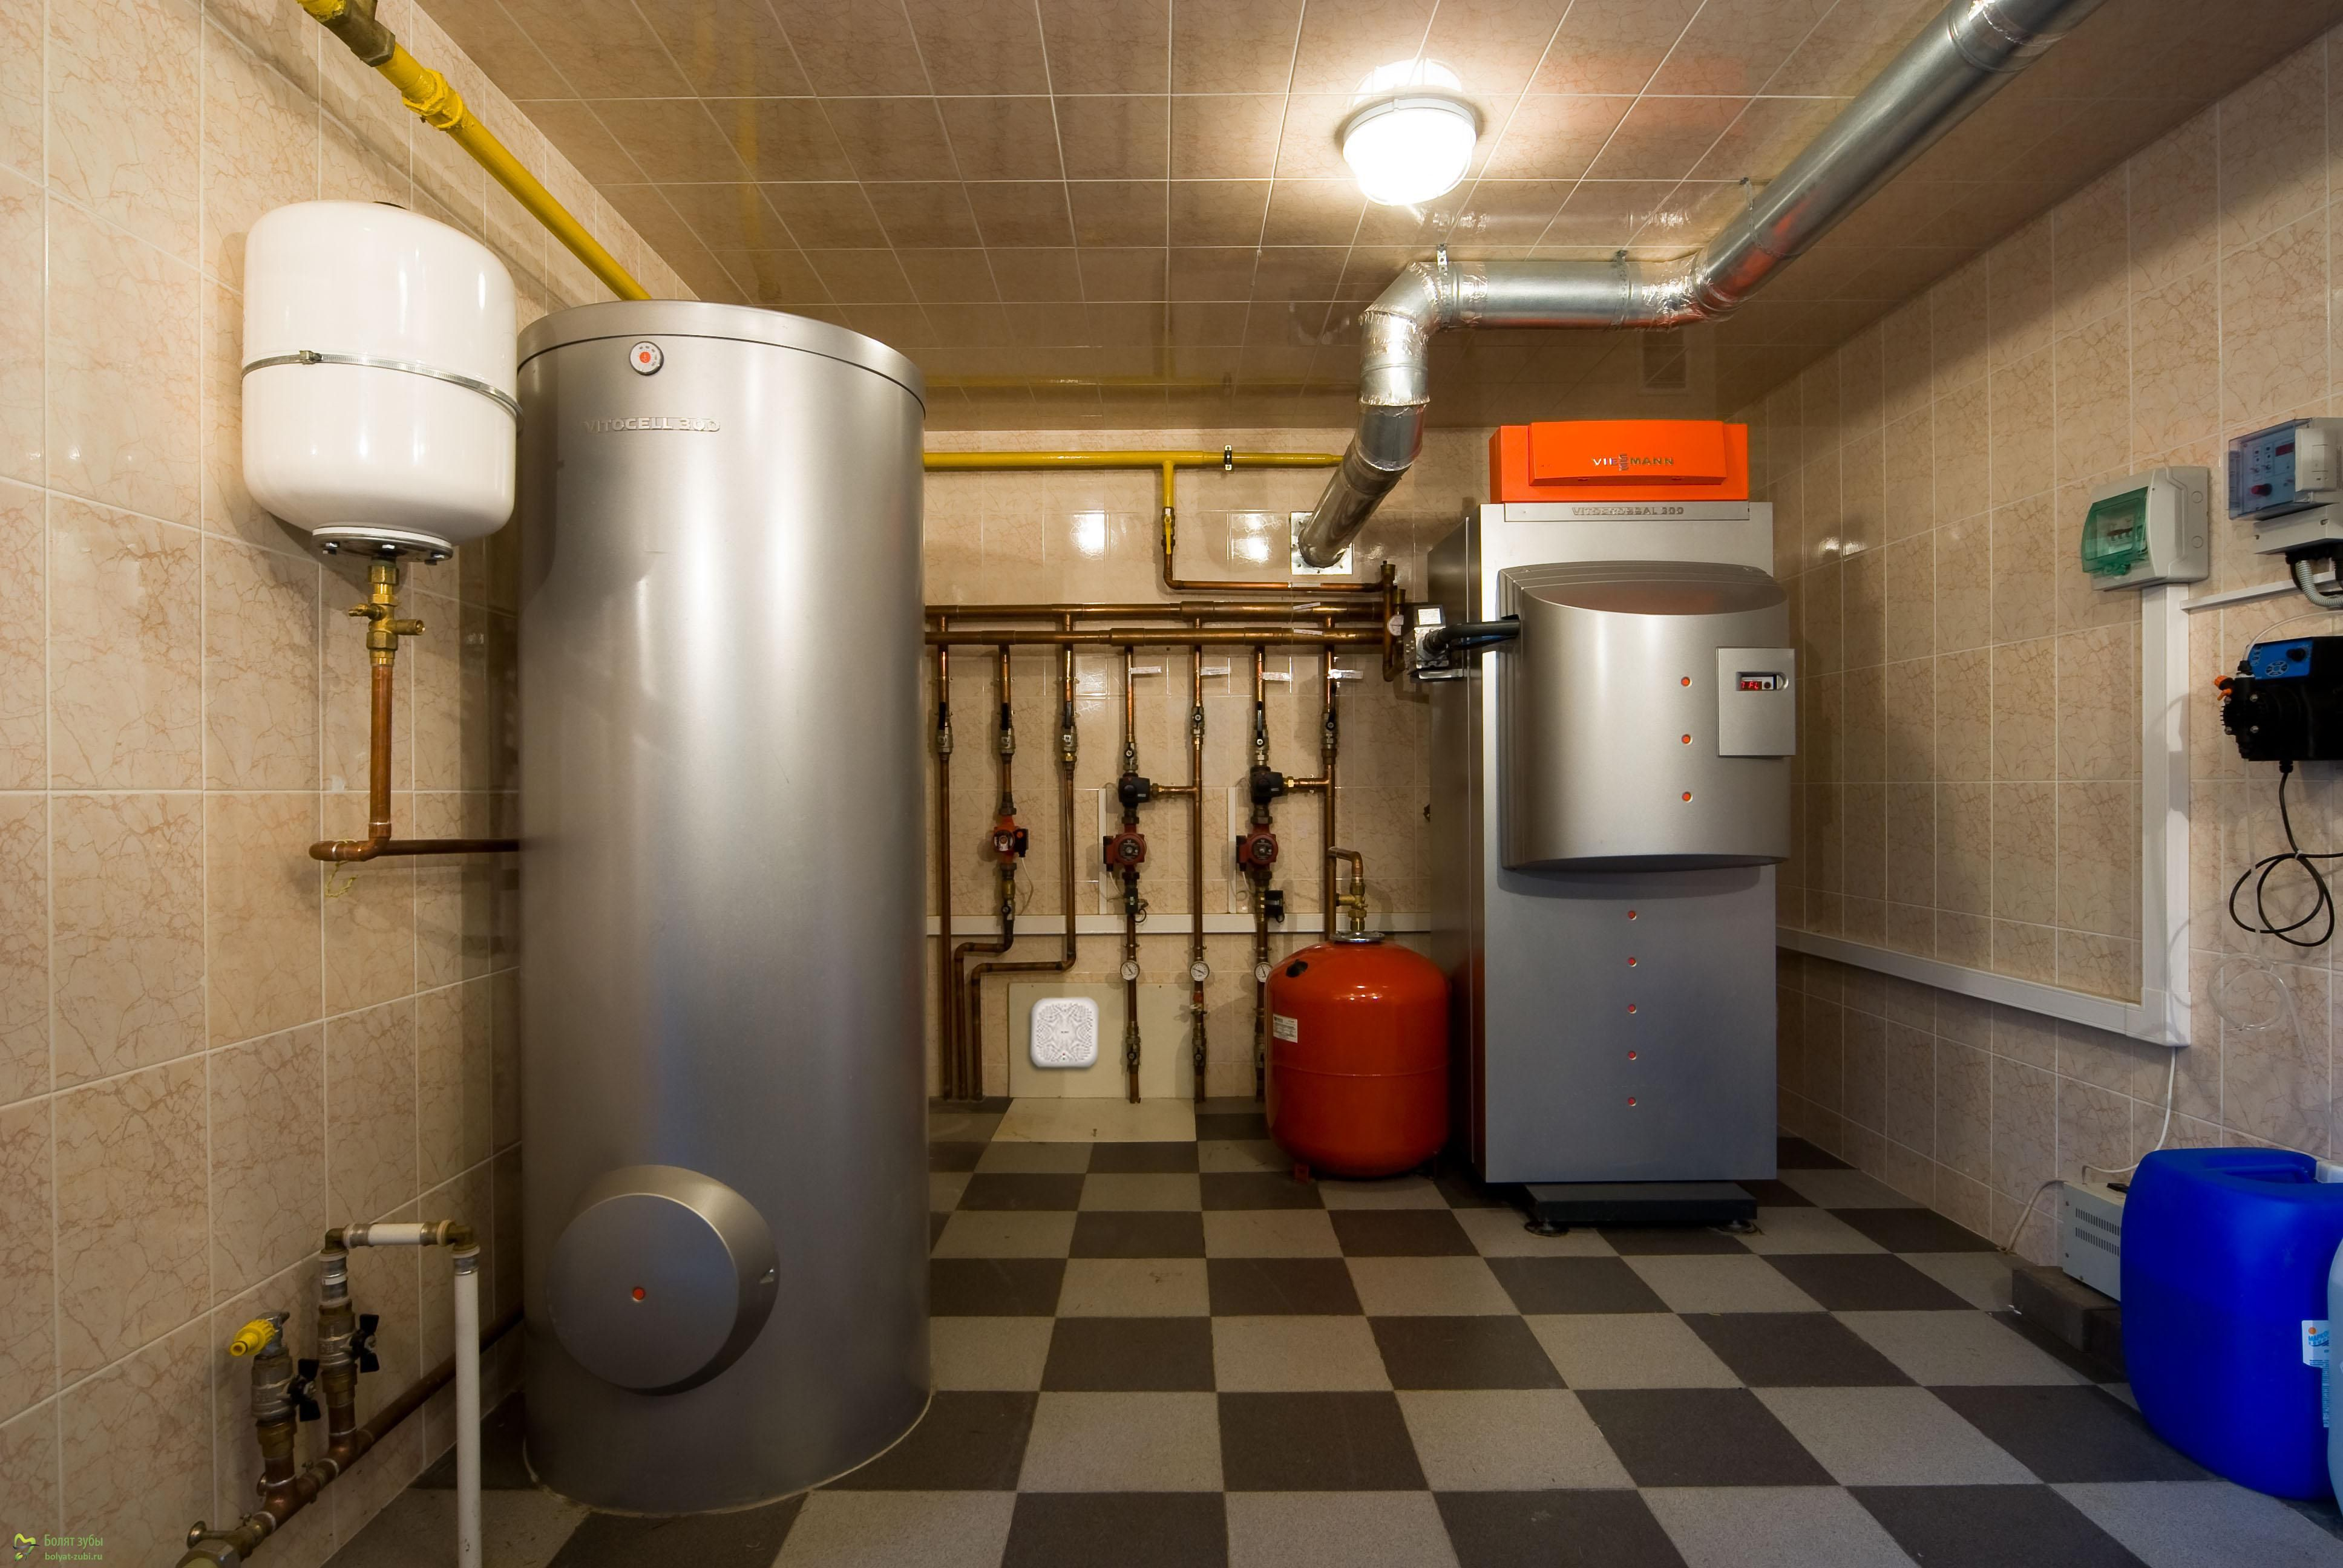 GAS ROOM